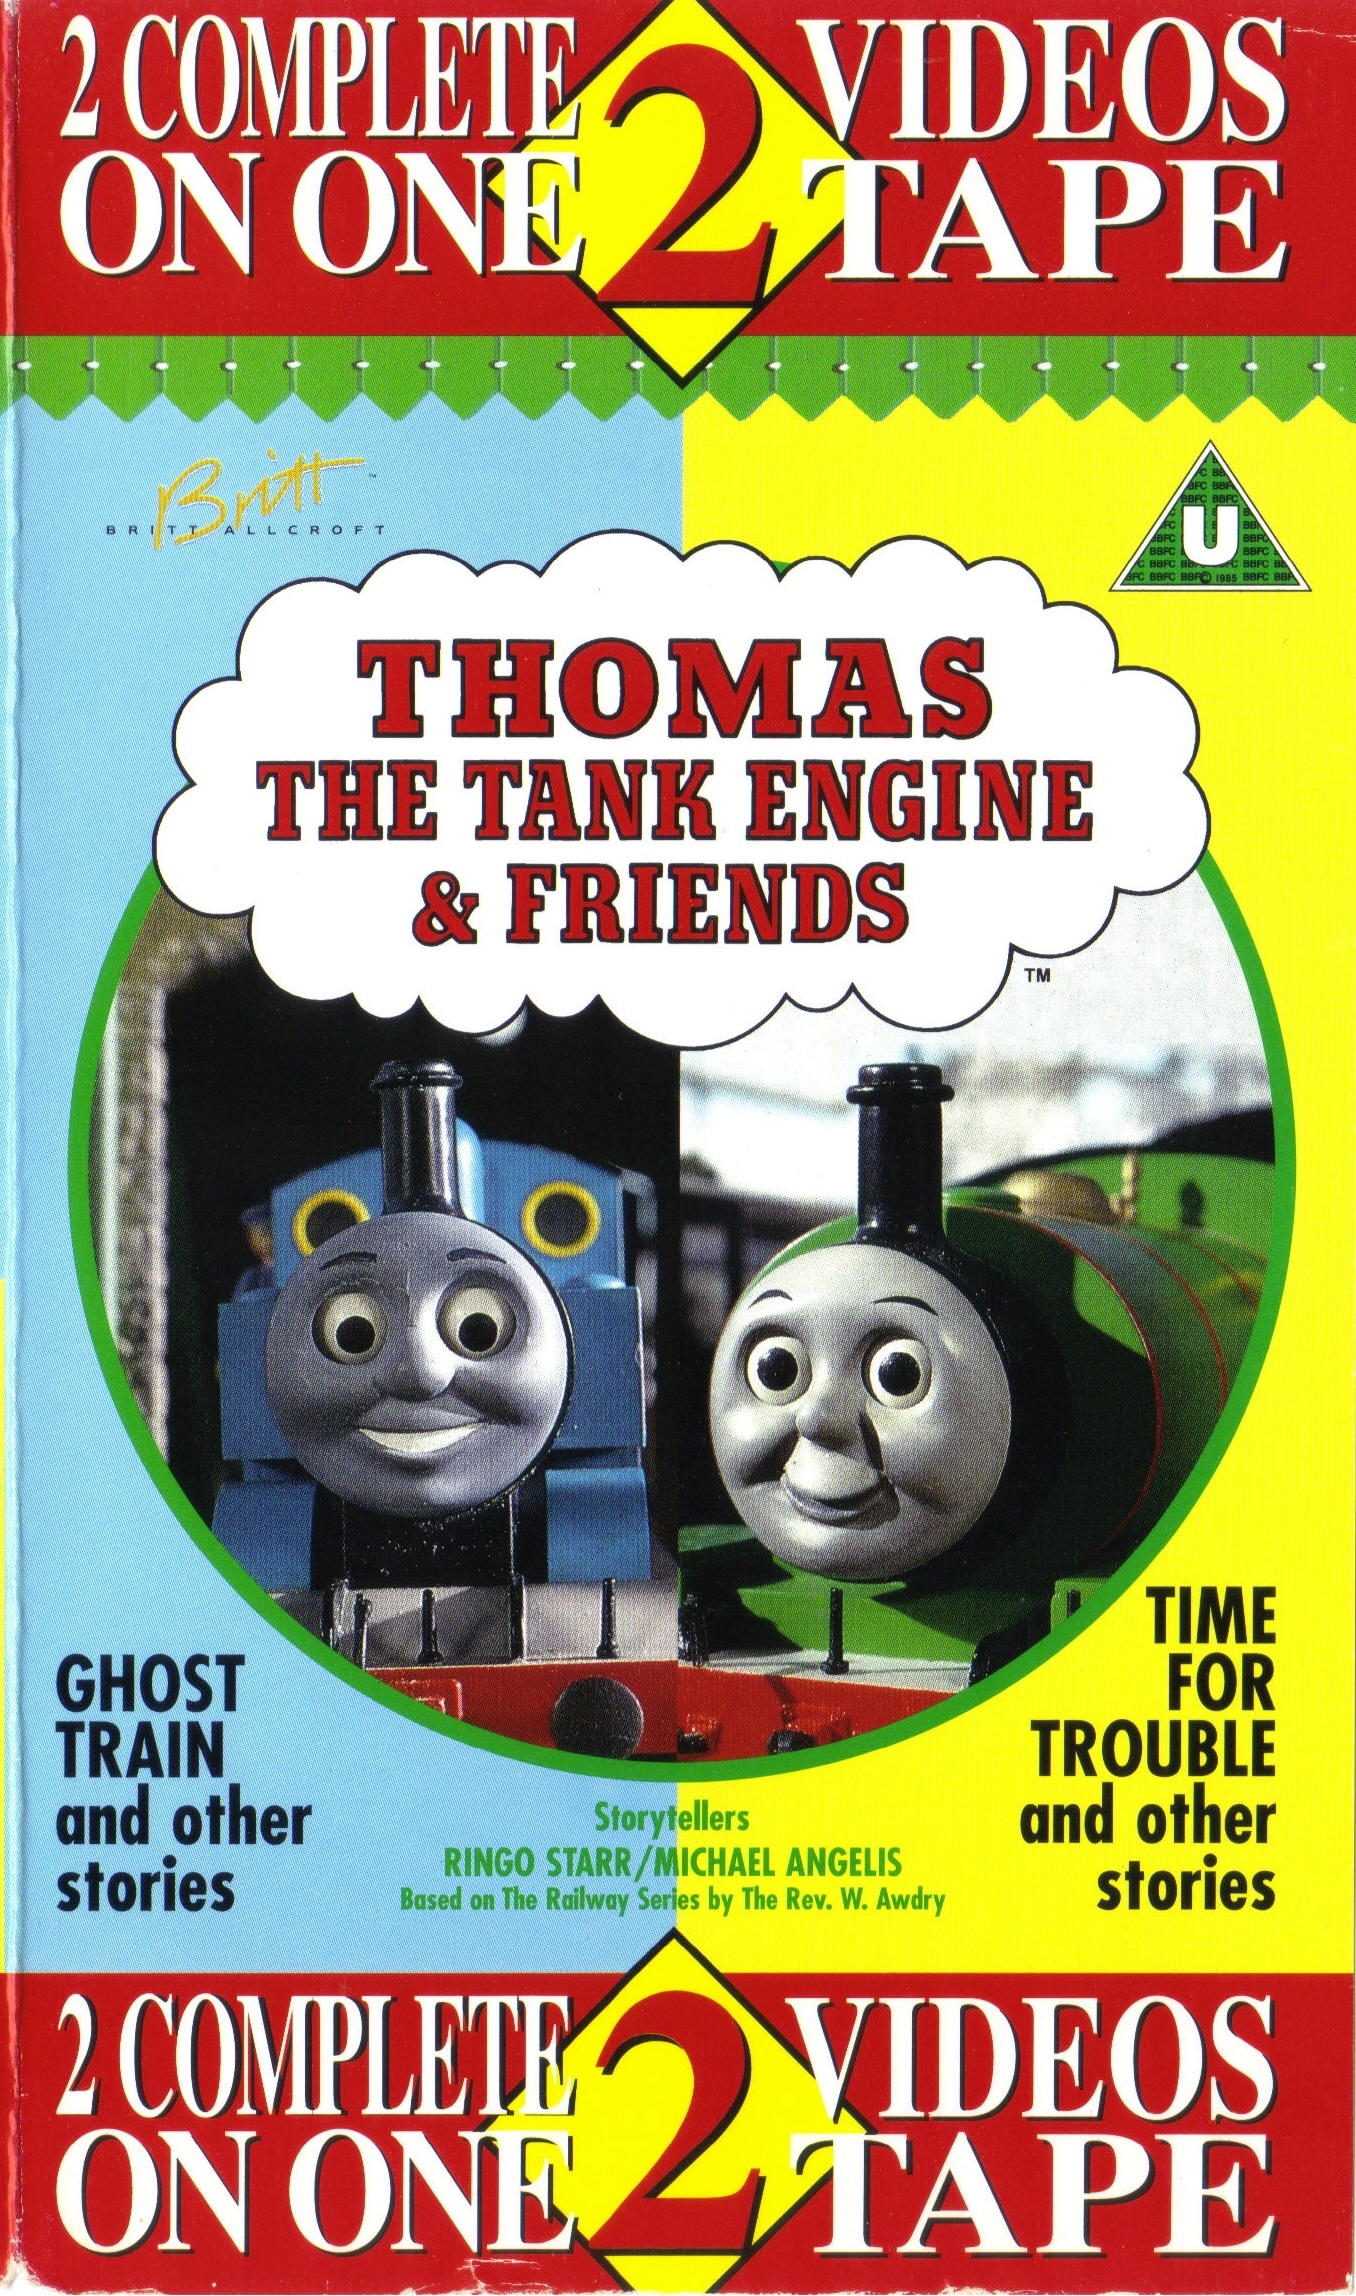 ghost train and other stories time for trouble and other stories thomas the tank engine wikia. Black Bedroom Furniture Sets. Home Design Ideas